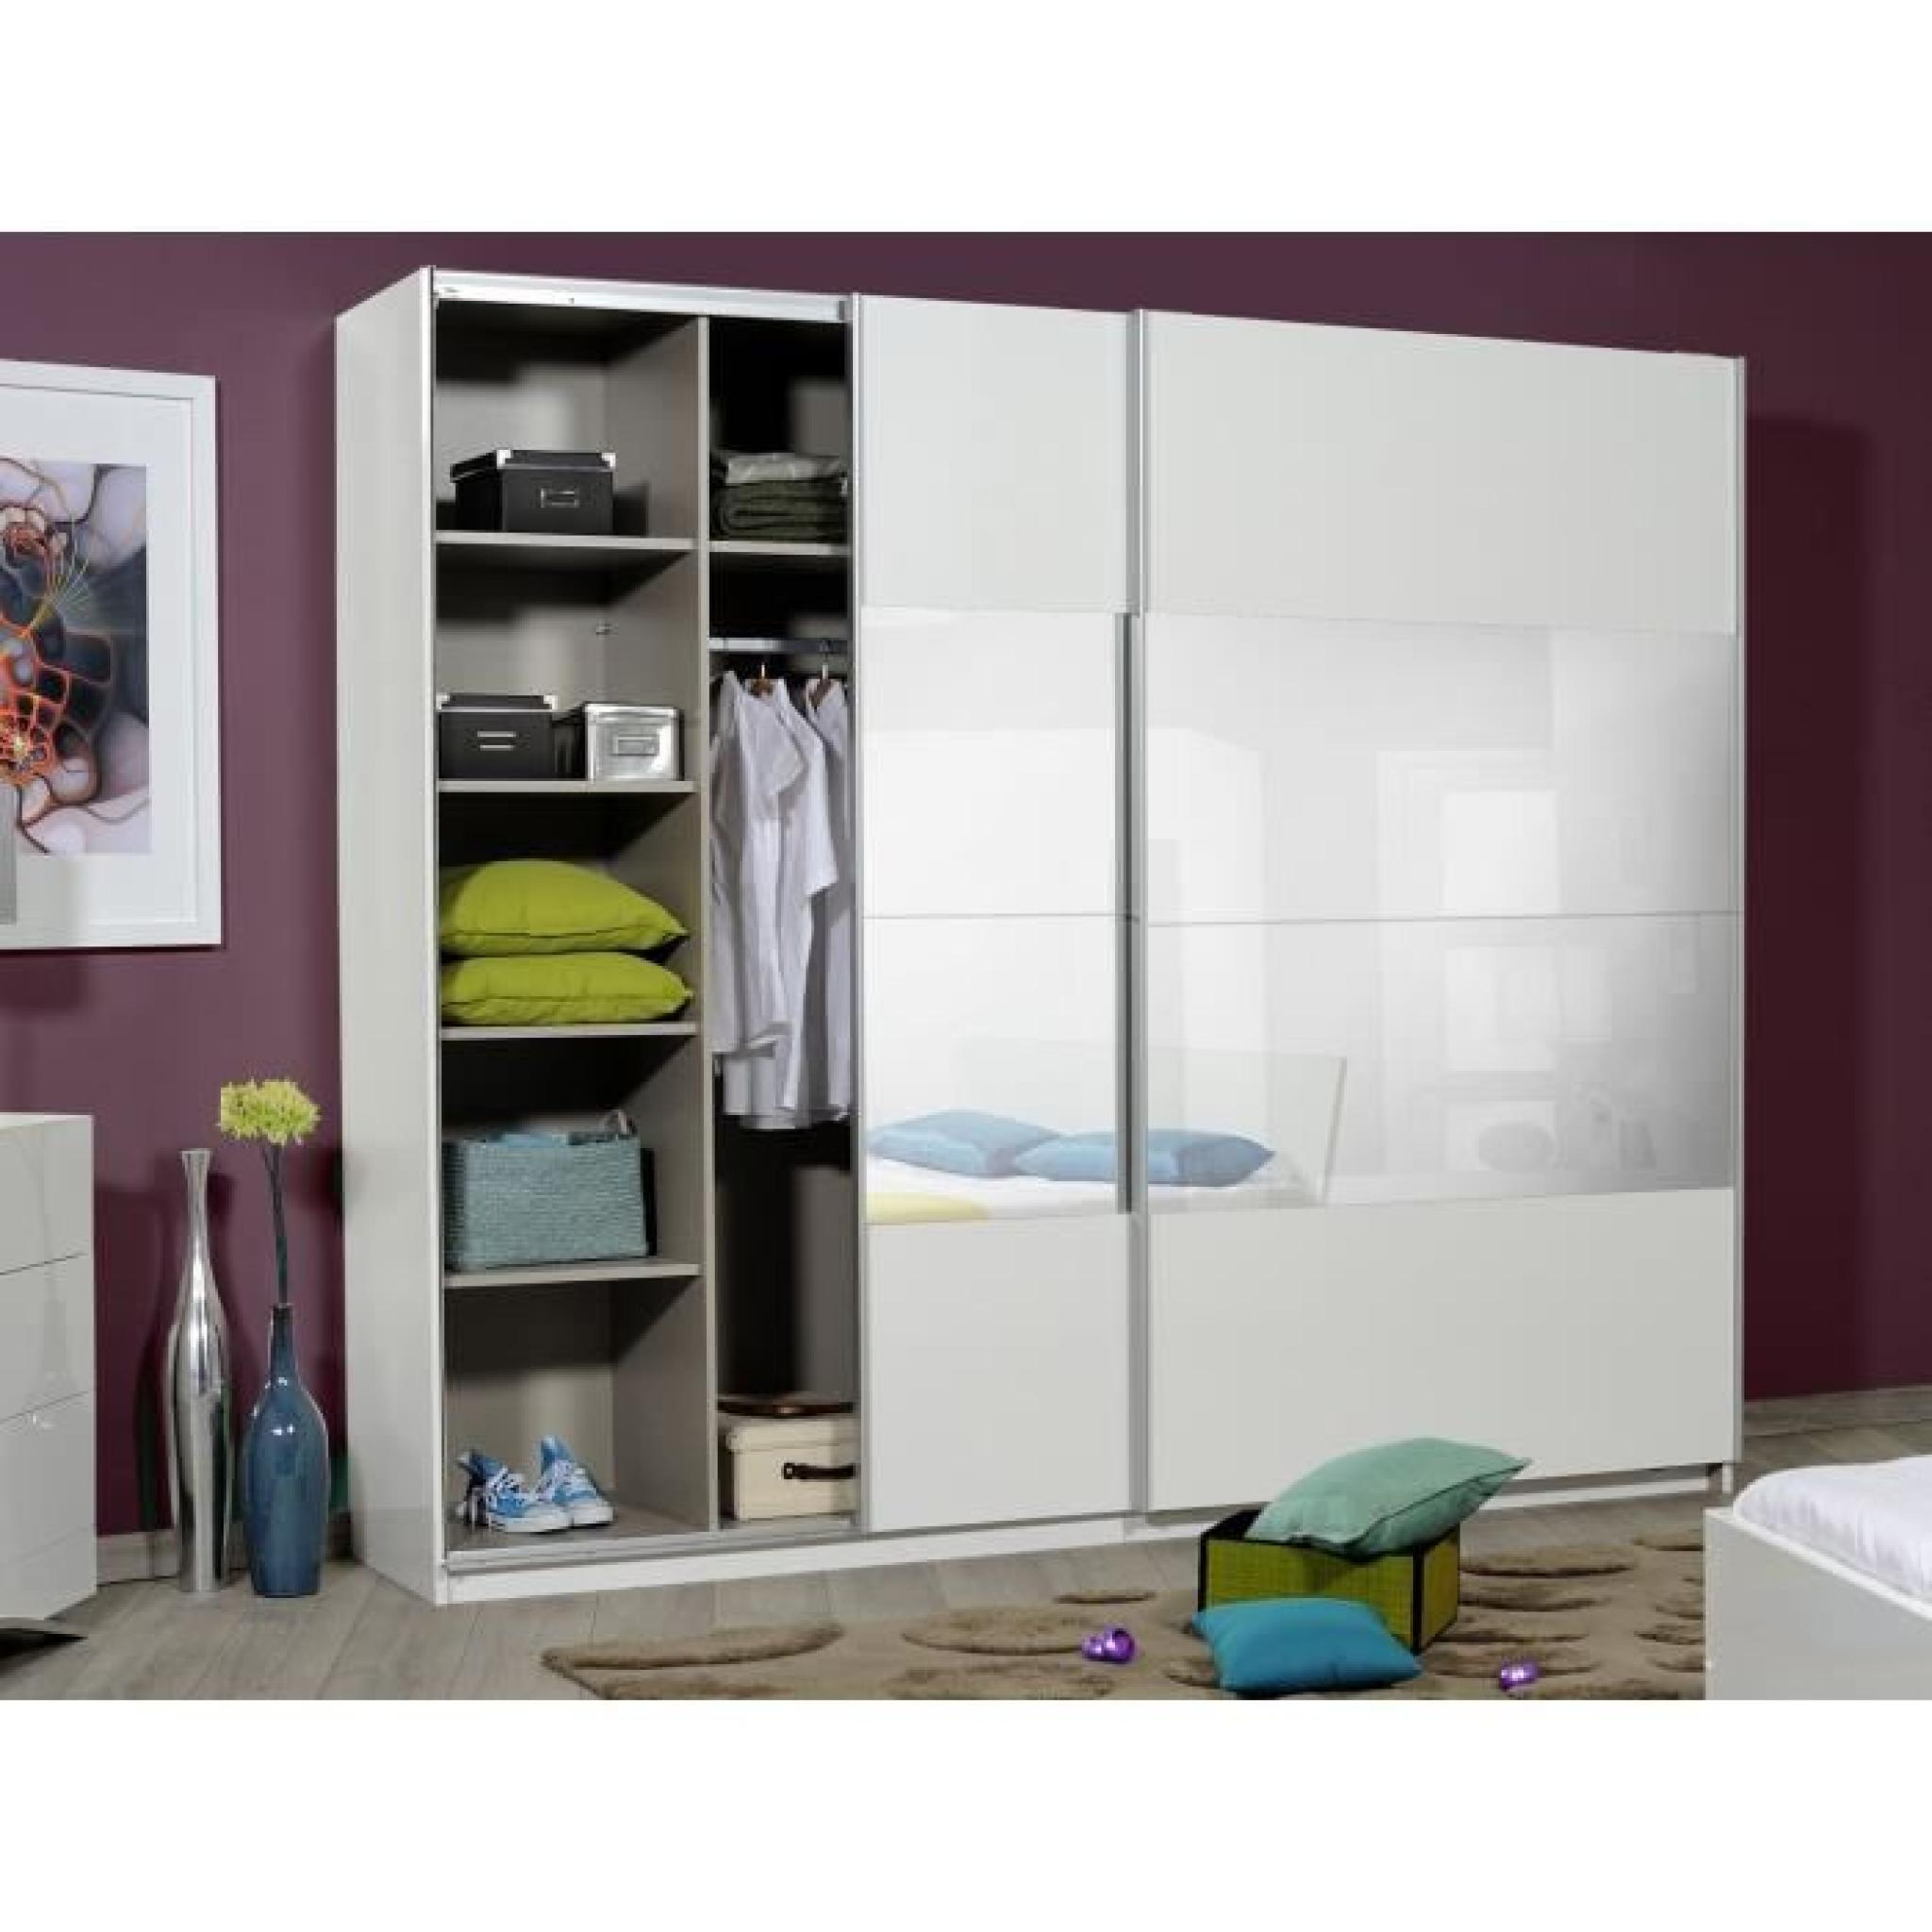 optimus maxi armoire dressing 260 cm blanc achat vente armoire de chambre pas cher couleur. Black Bedroom Furniture Sets. Home Design Ideas